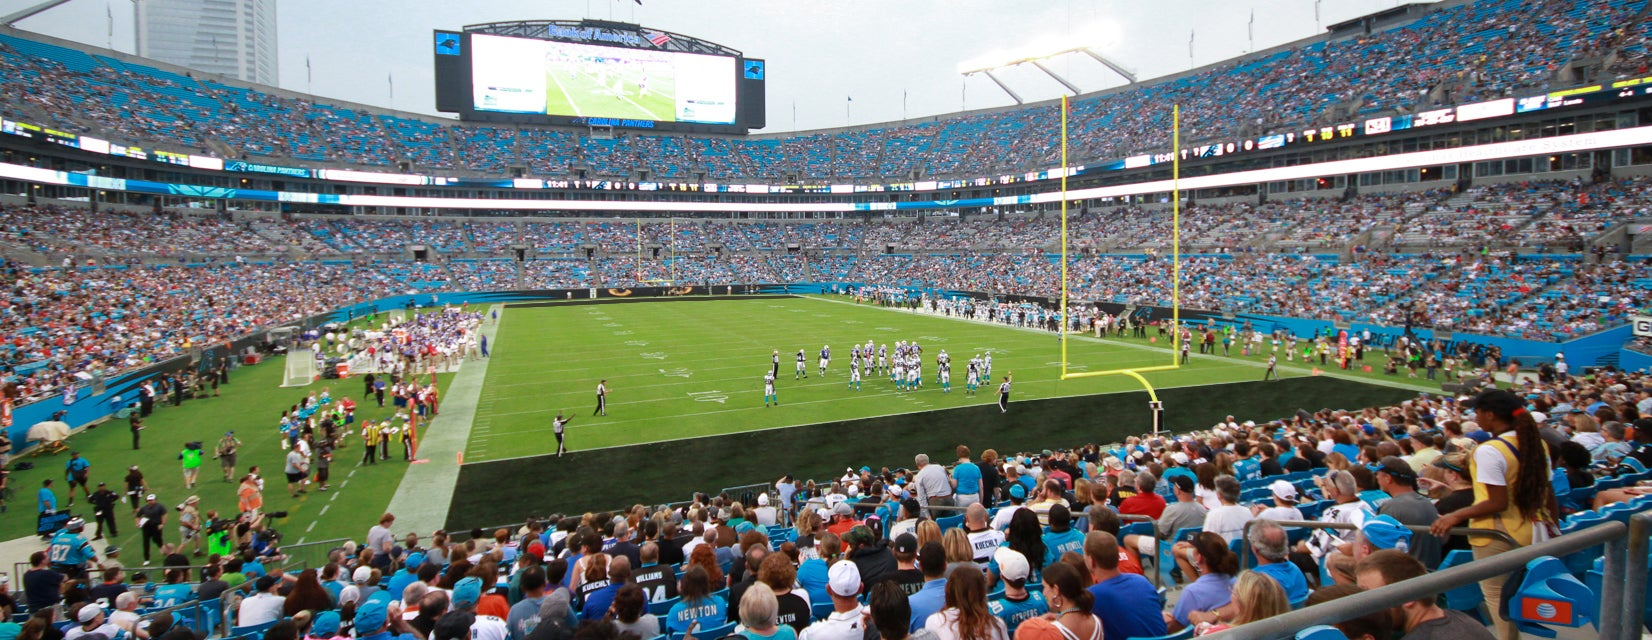 Seat view from Lower End Zone